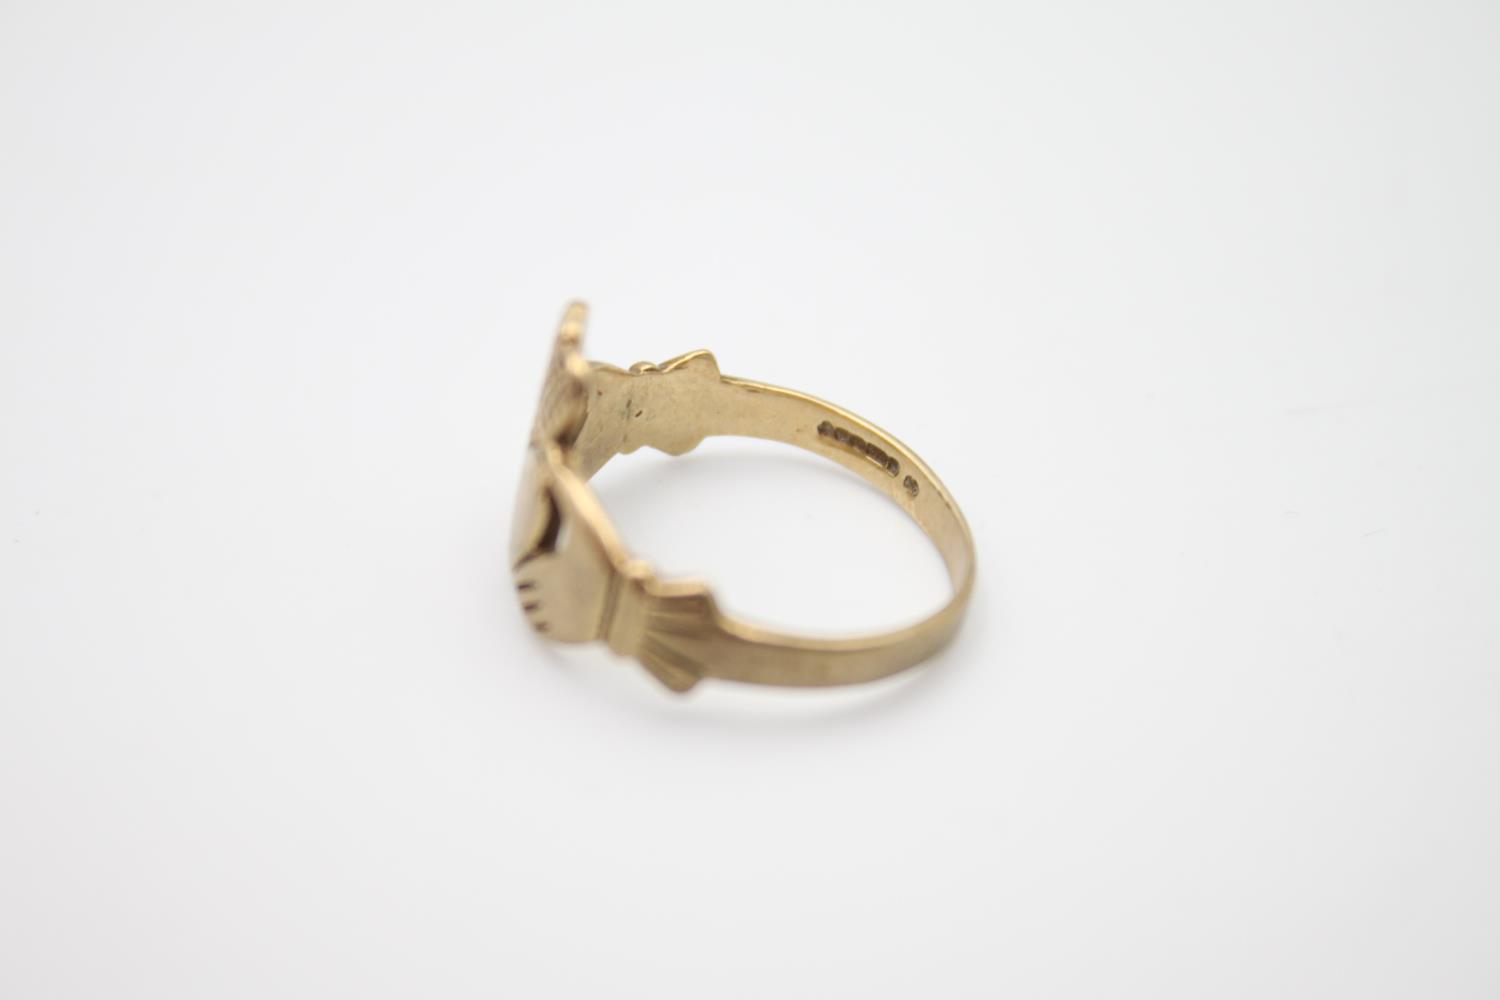 2 x 9ct gold Claddagh rings 4.1g Size K & O - Image 3 of 5